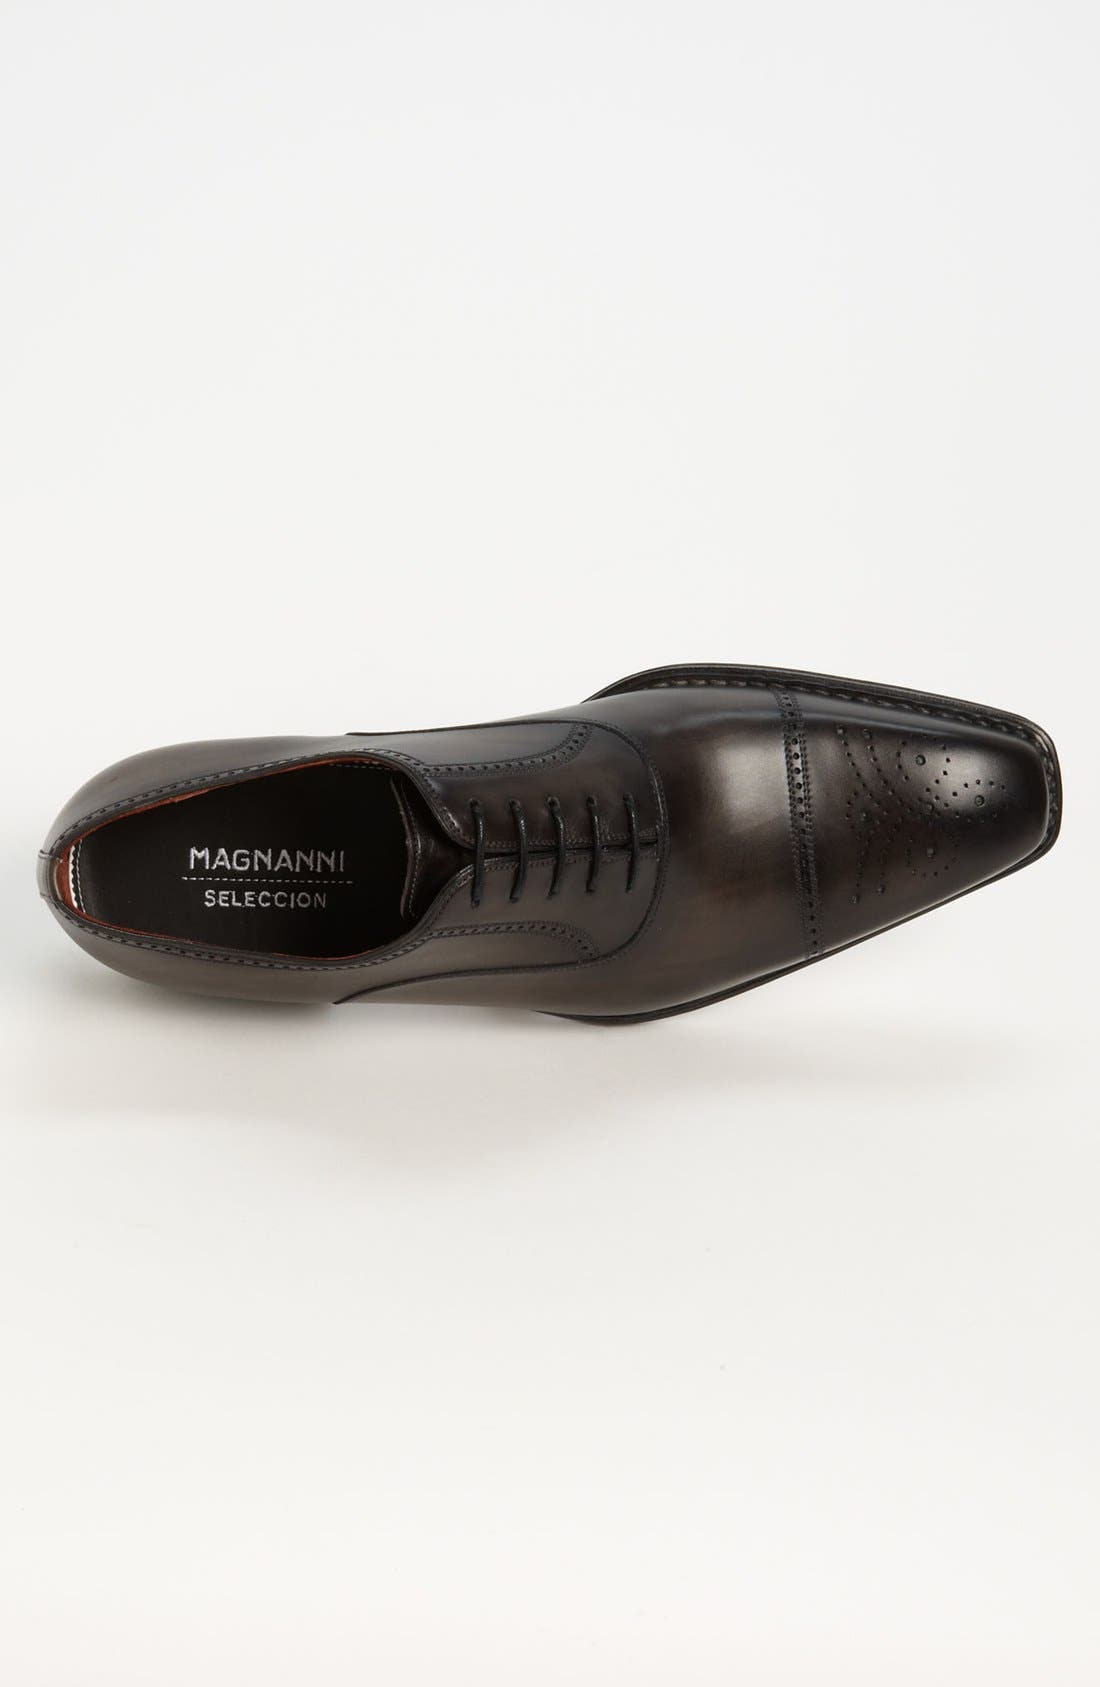 Alternate Image 3  - Magnanni 'Seleccion - Valencia' Cap Toe Oxford